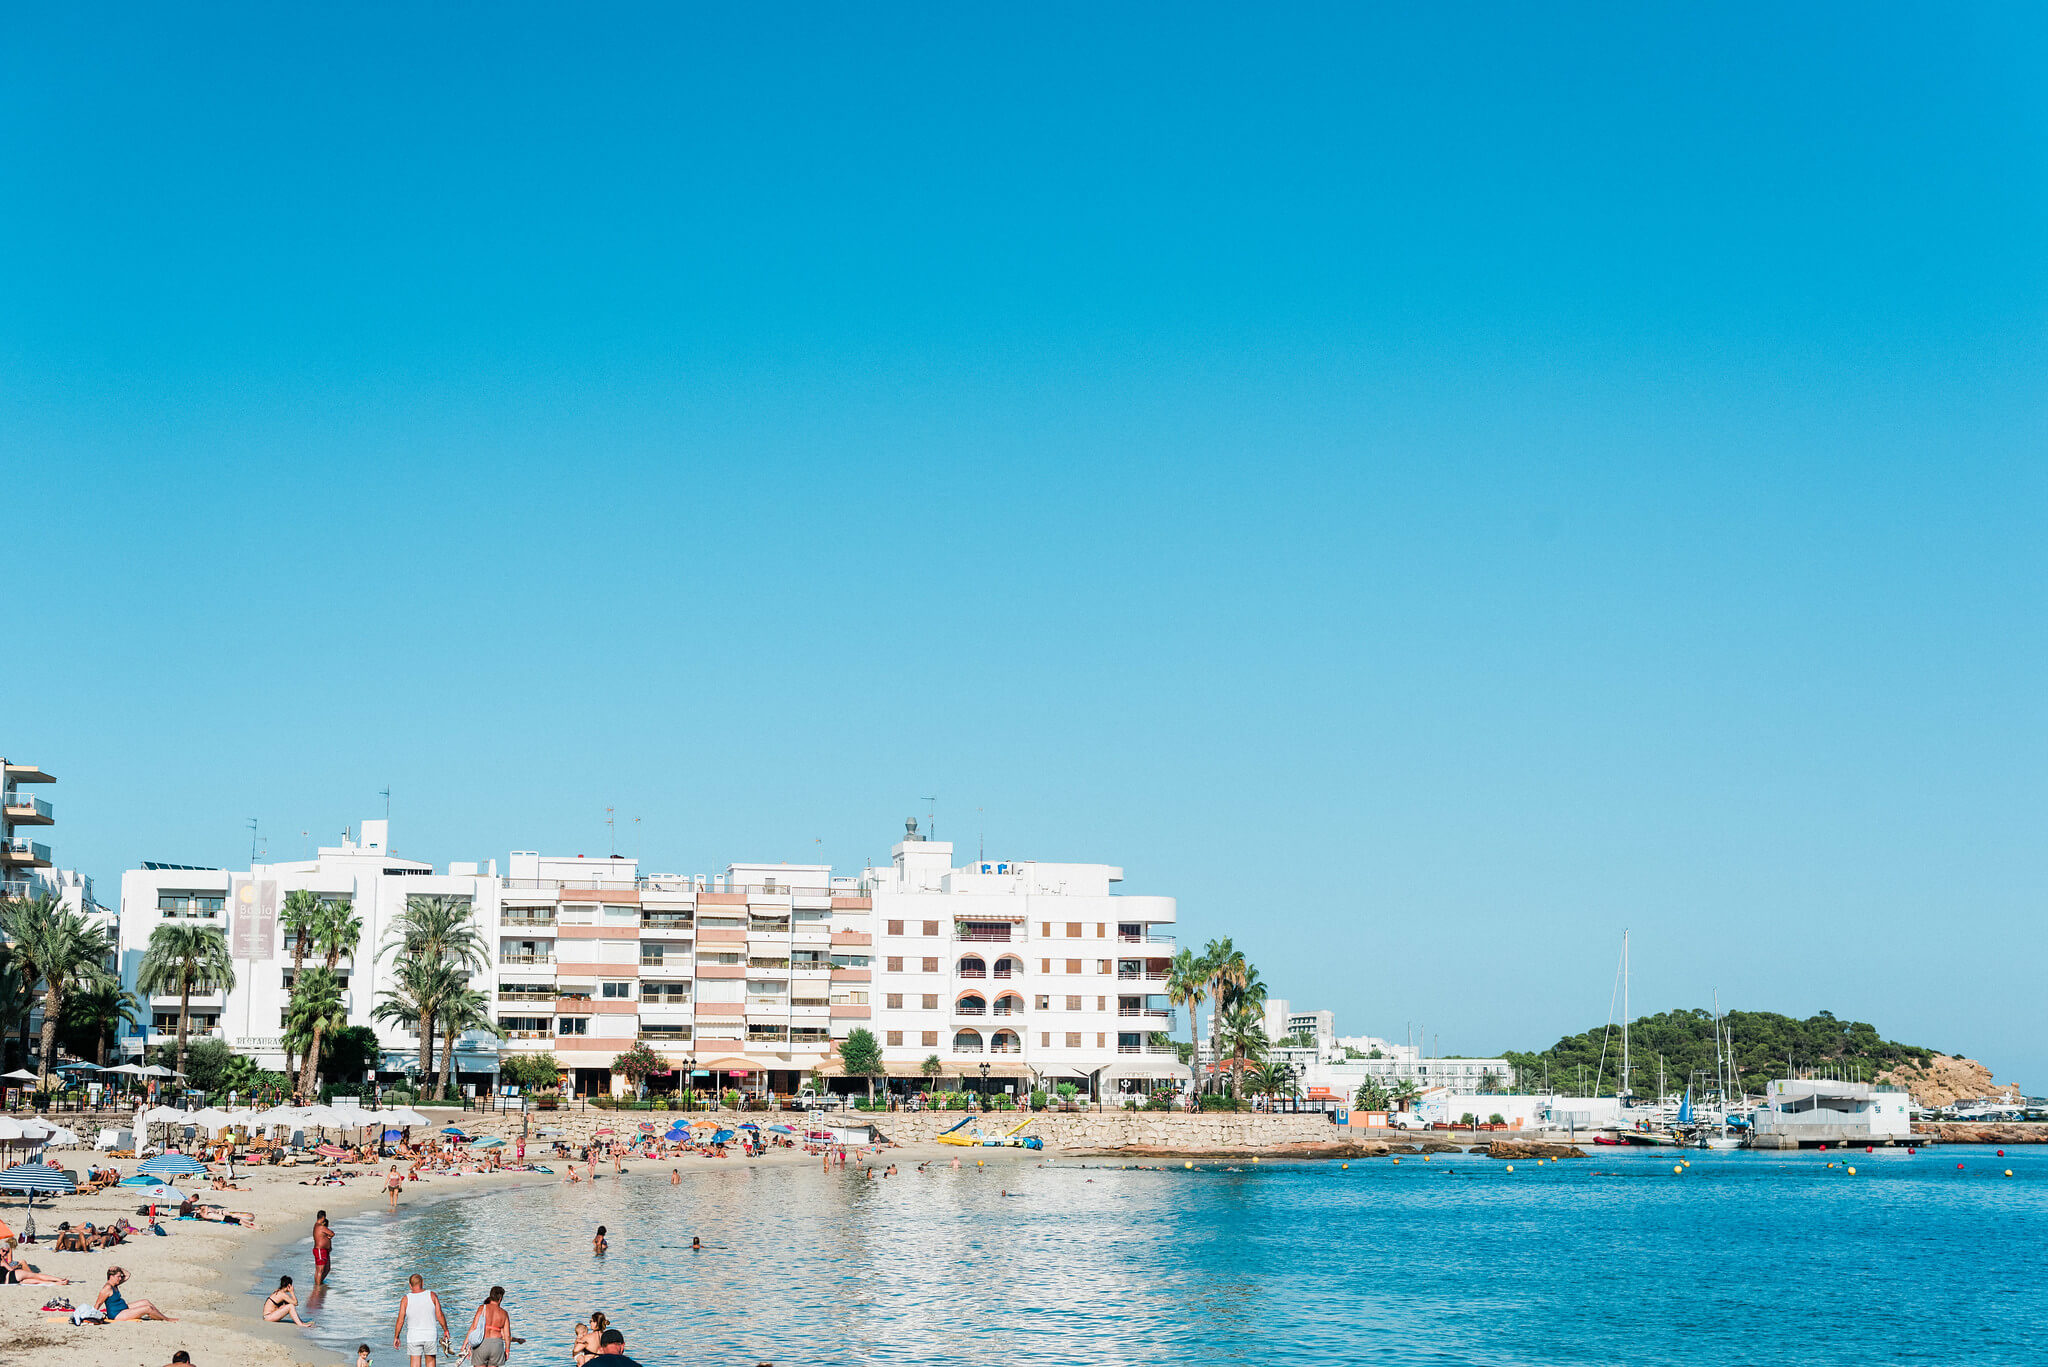 https://www.white-ibiza.com/wp-content/uploads/2020/03/ibiza-beaches-santa-eulalia-02.jpg